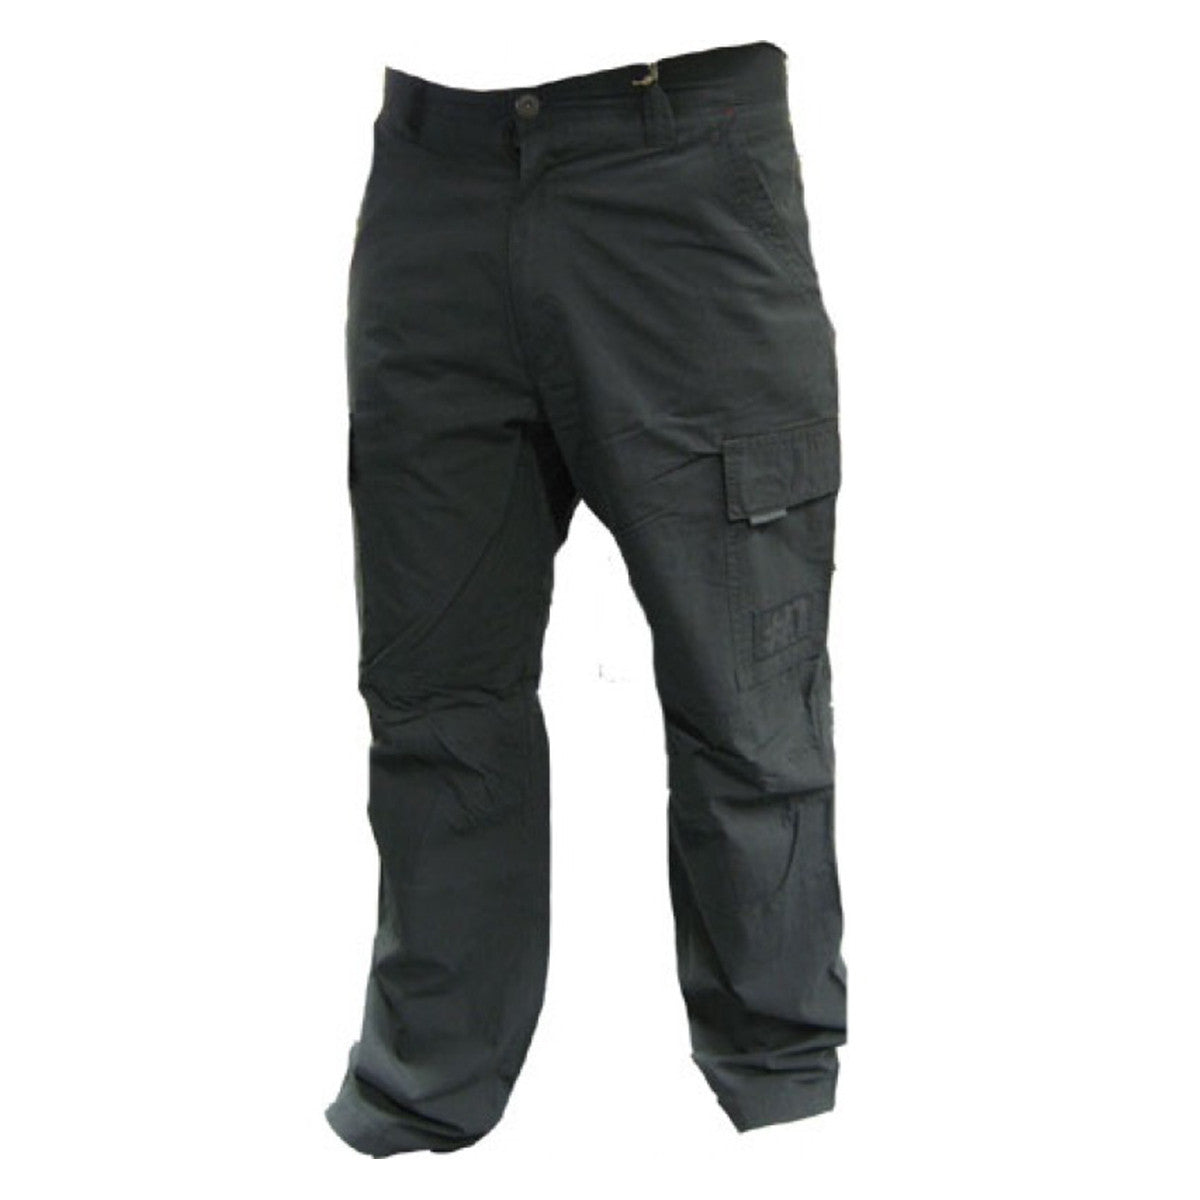 Musto #1 Trousers